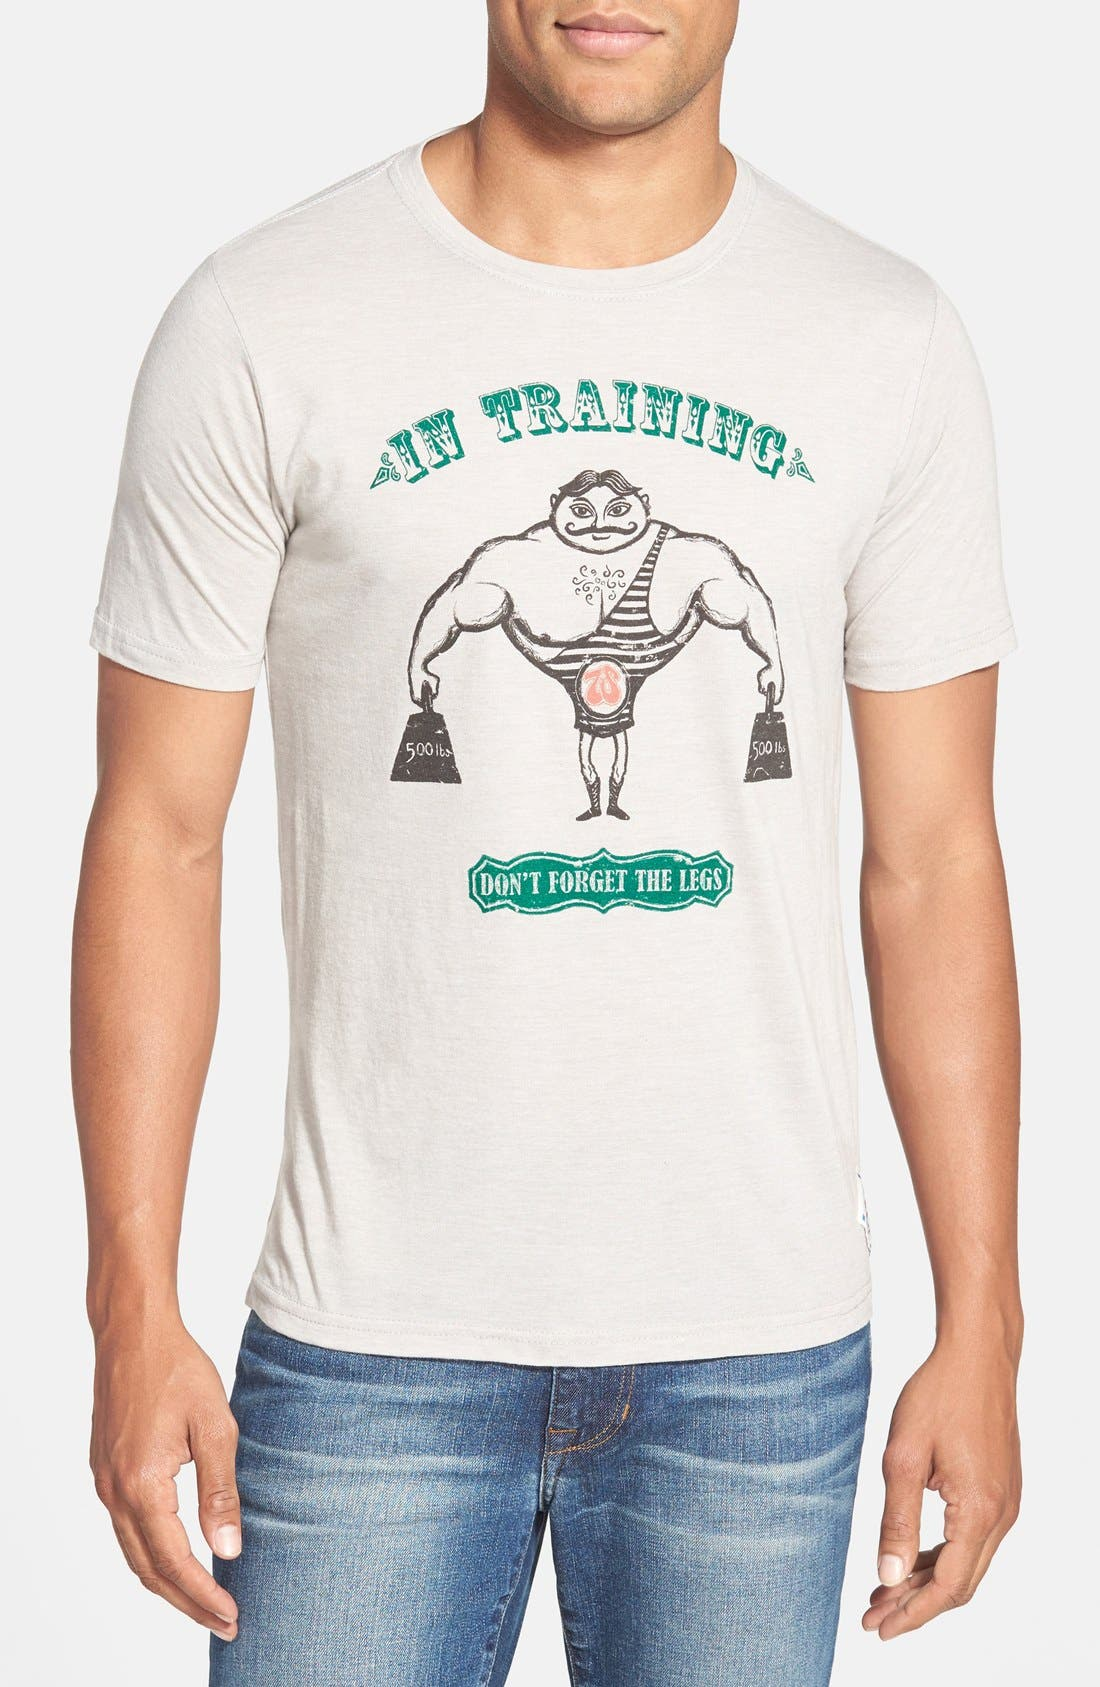 7TH INNING STRETCH 'In Training' Graphic T-Shirt